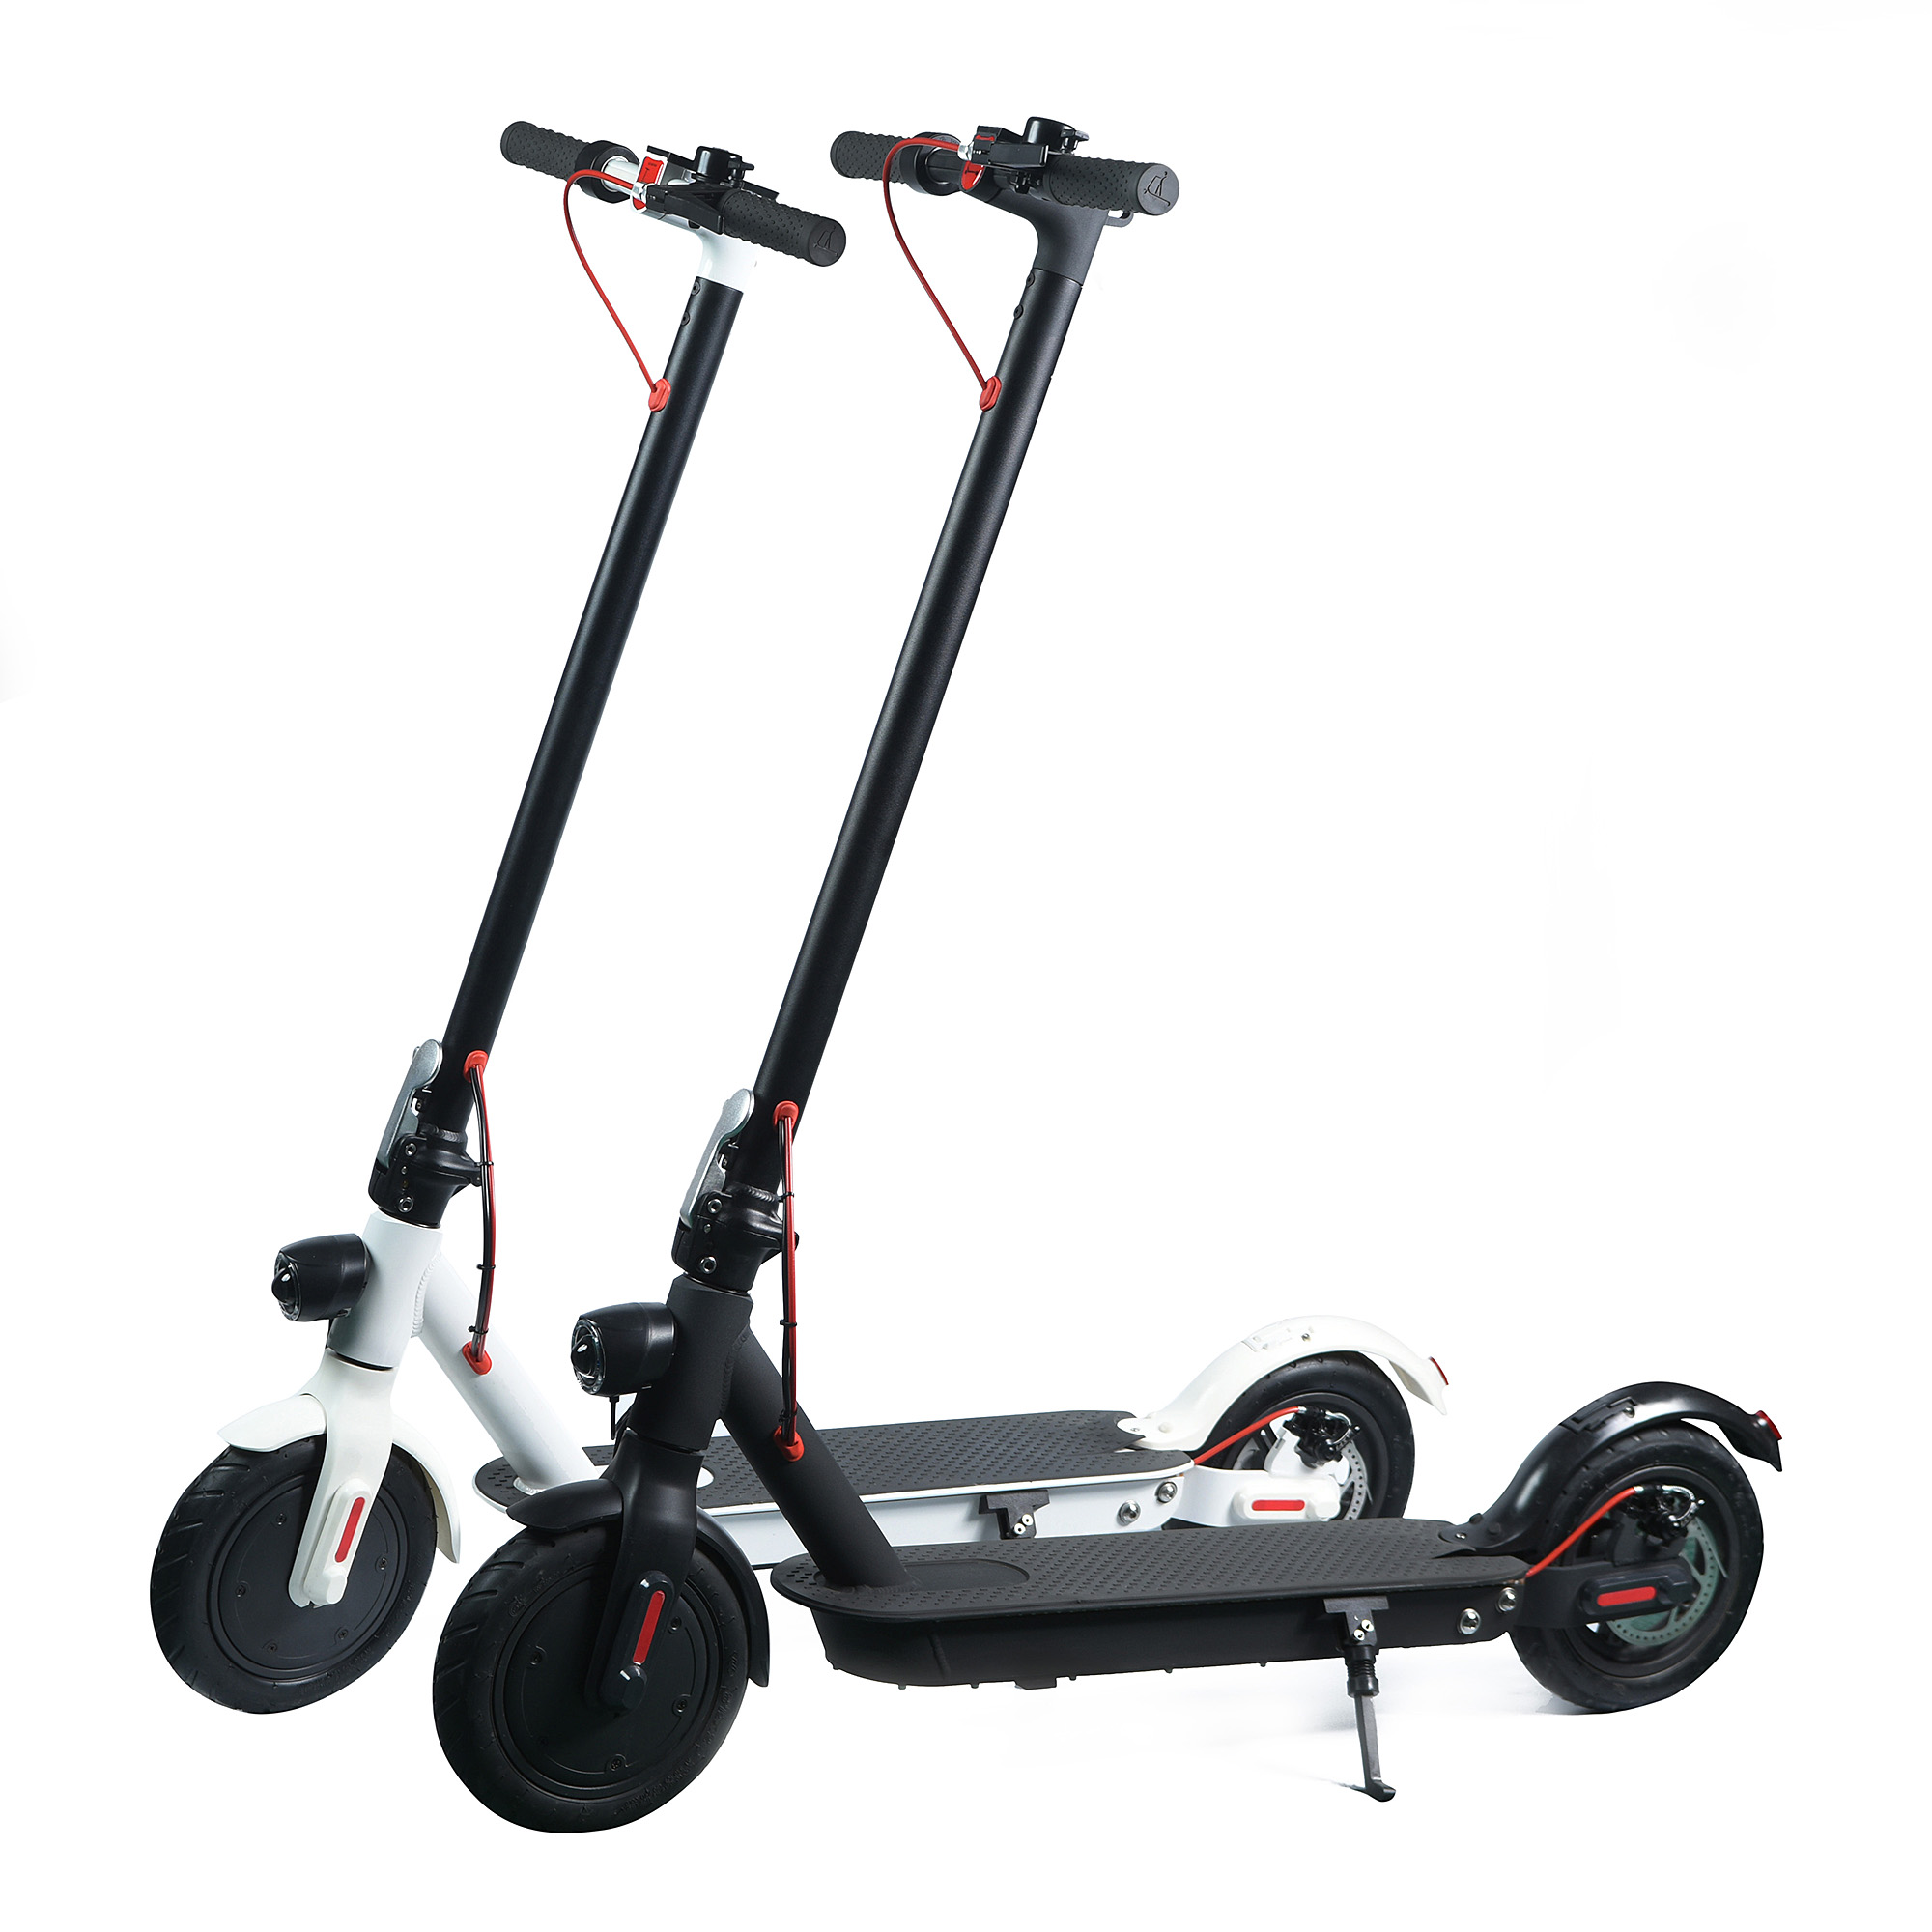 350W 36V 10.4Ah CE lithium battery better than M365 scooter cheap adults electric lightest micro kick scooter with seat, Black